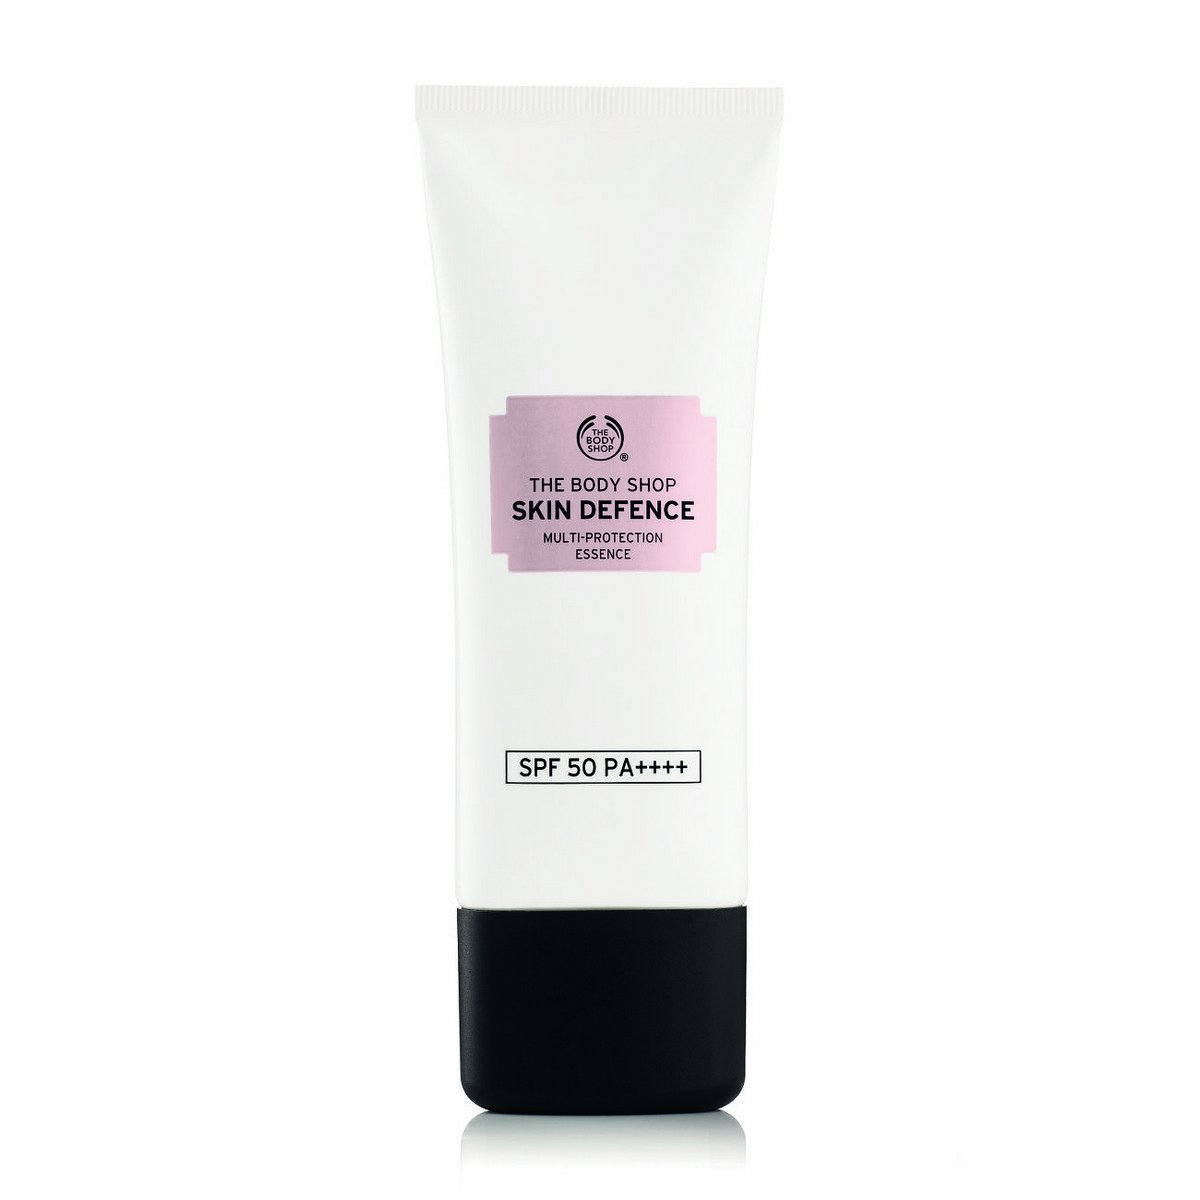 The Body Shop Skin Defence Multi Protection Essence SPF 50 PA+++